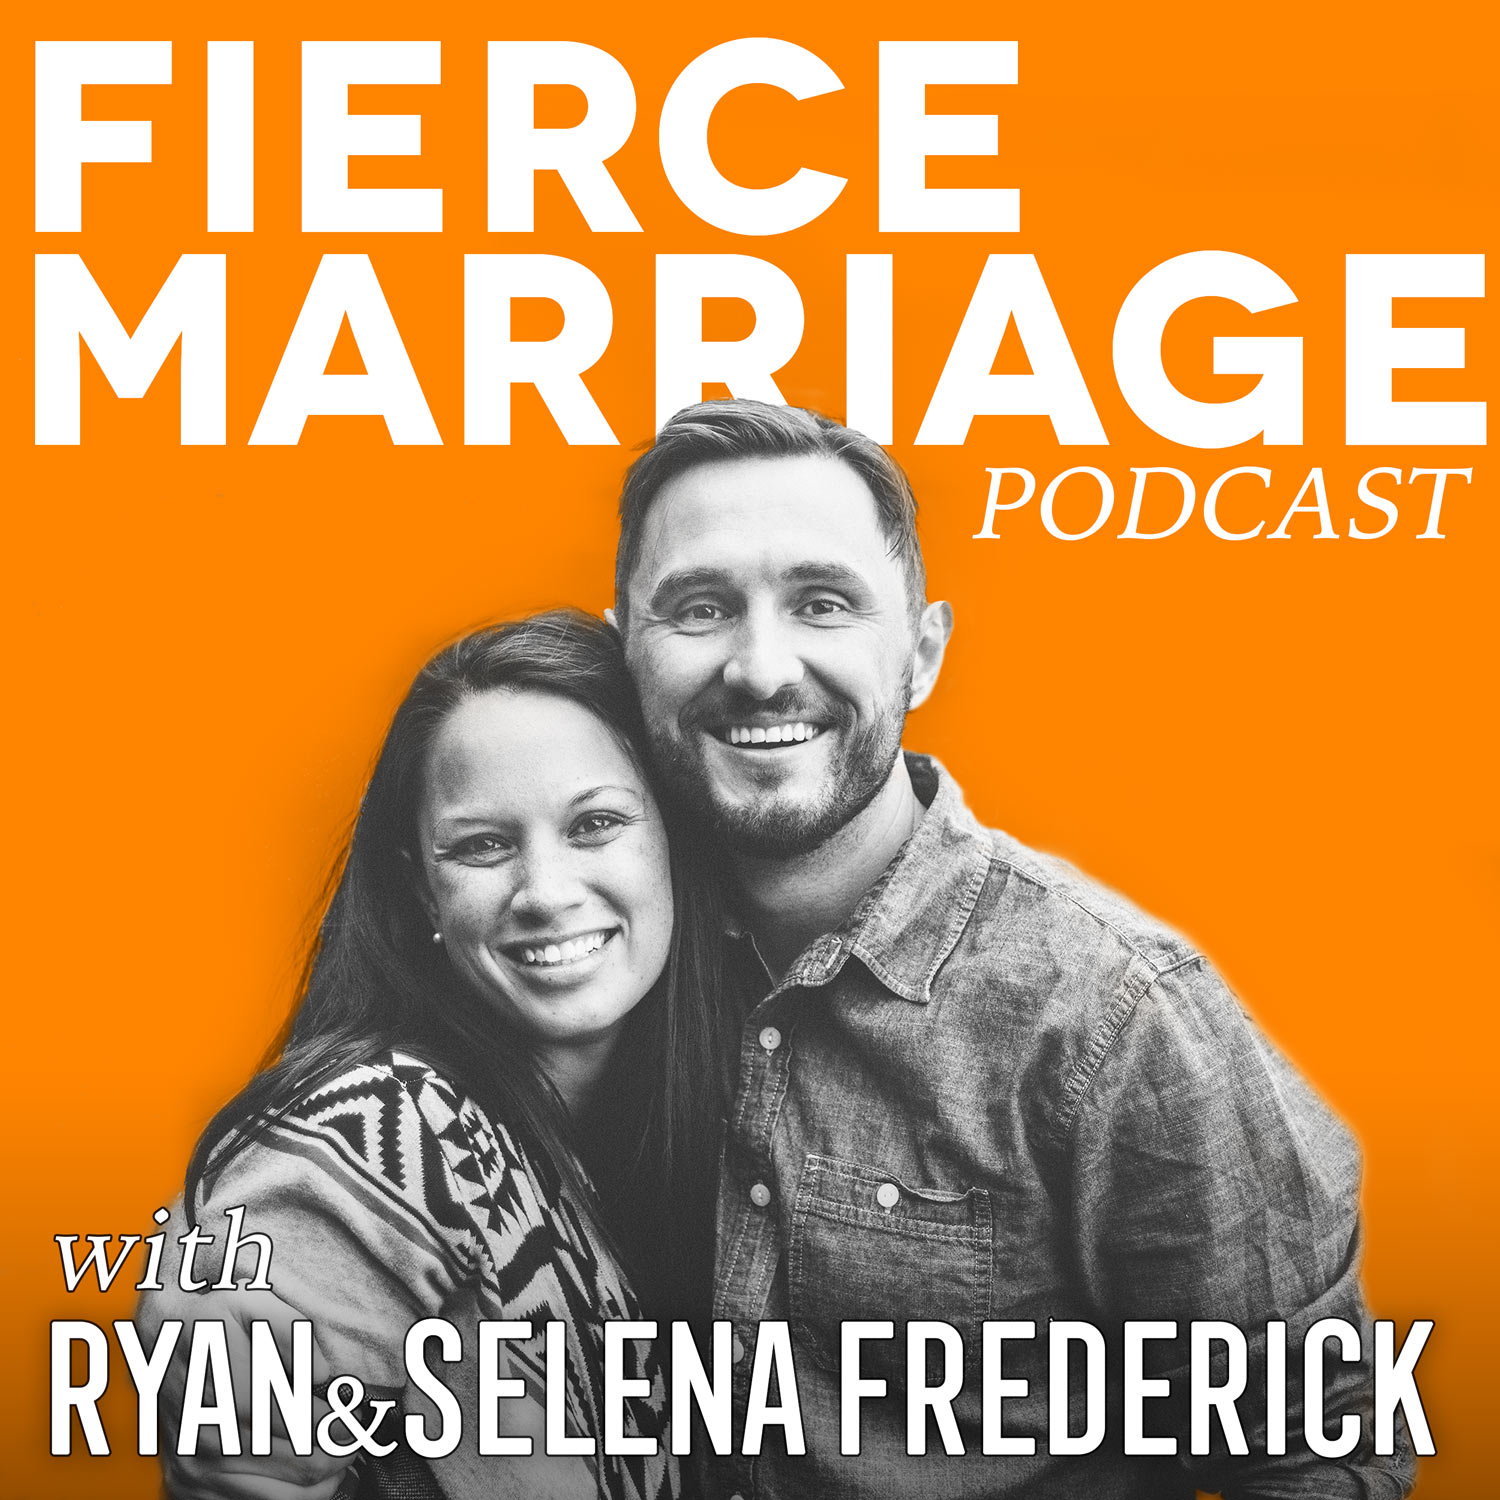 The Fierce Marriage Podcast